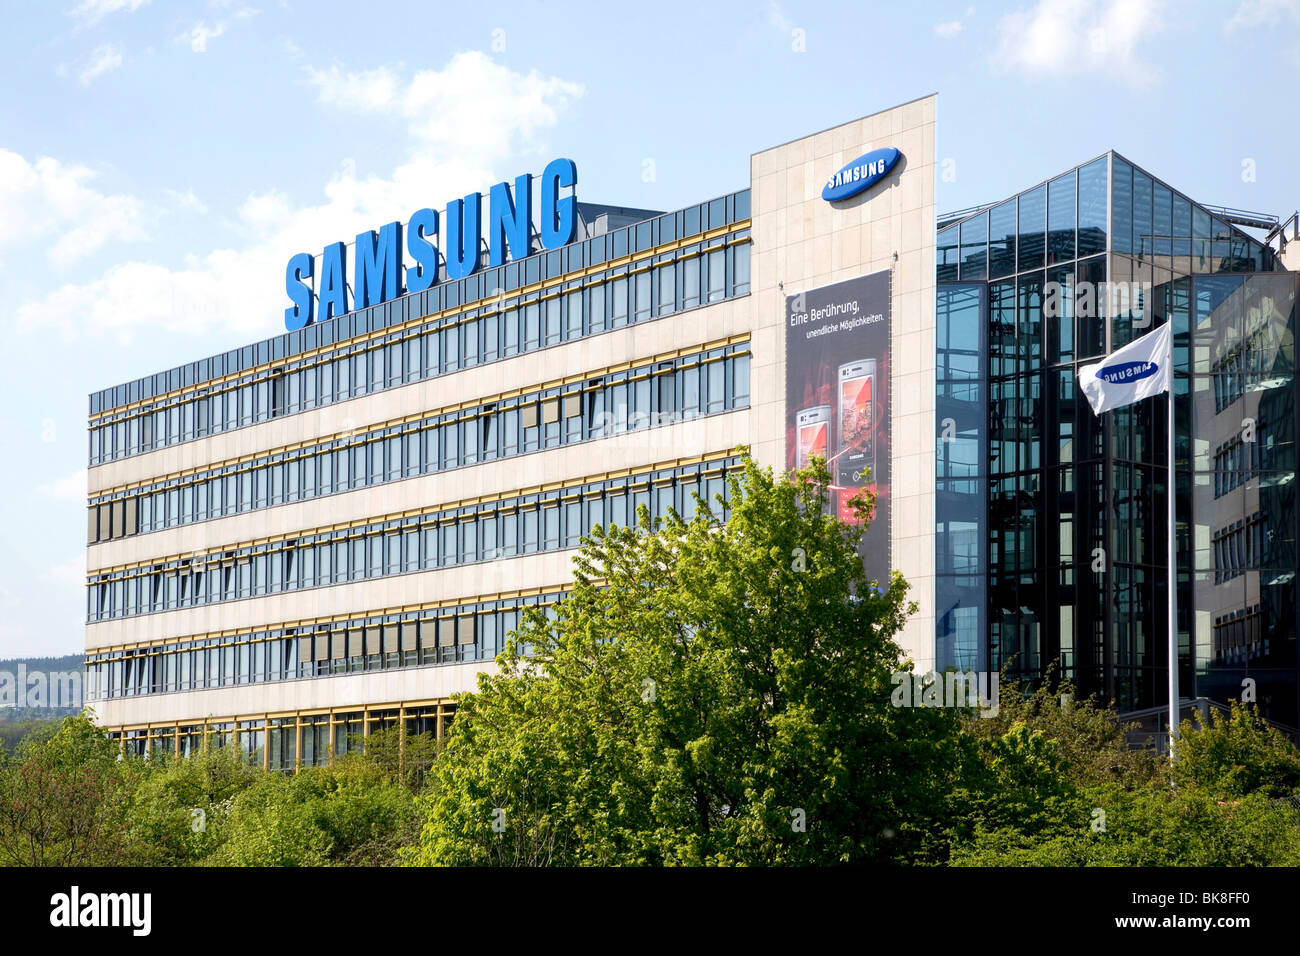 samsung electronics gmbh company headquarters in germany schwalbach stock photo royalty free. Black Bedroom Furniture Sets. Home Design Ideas